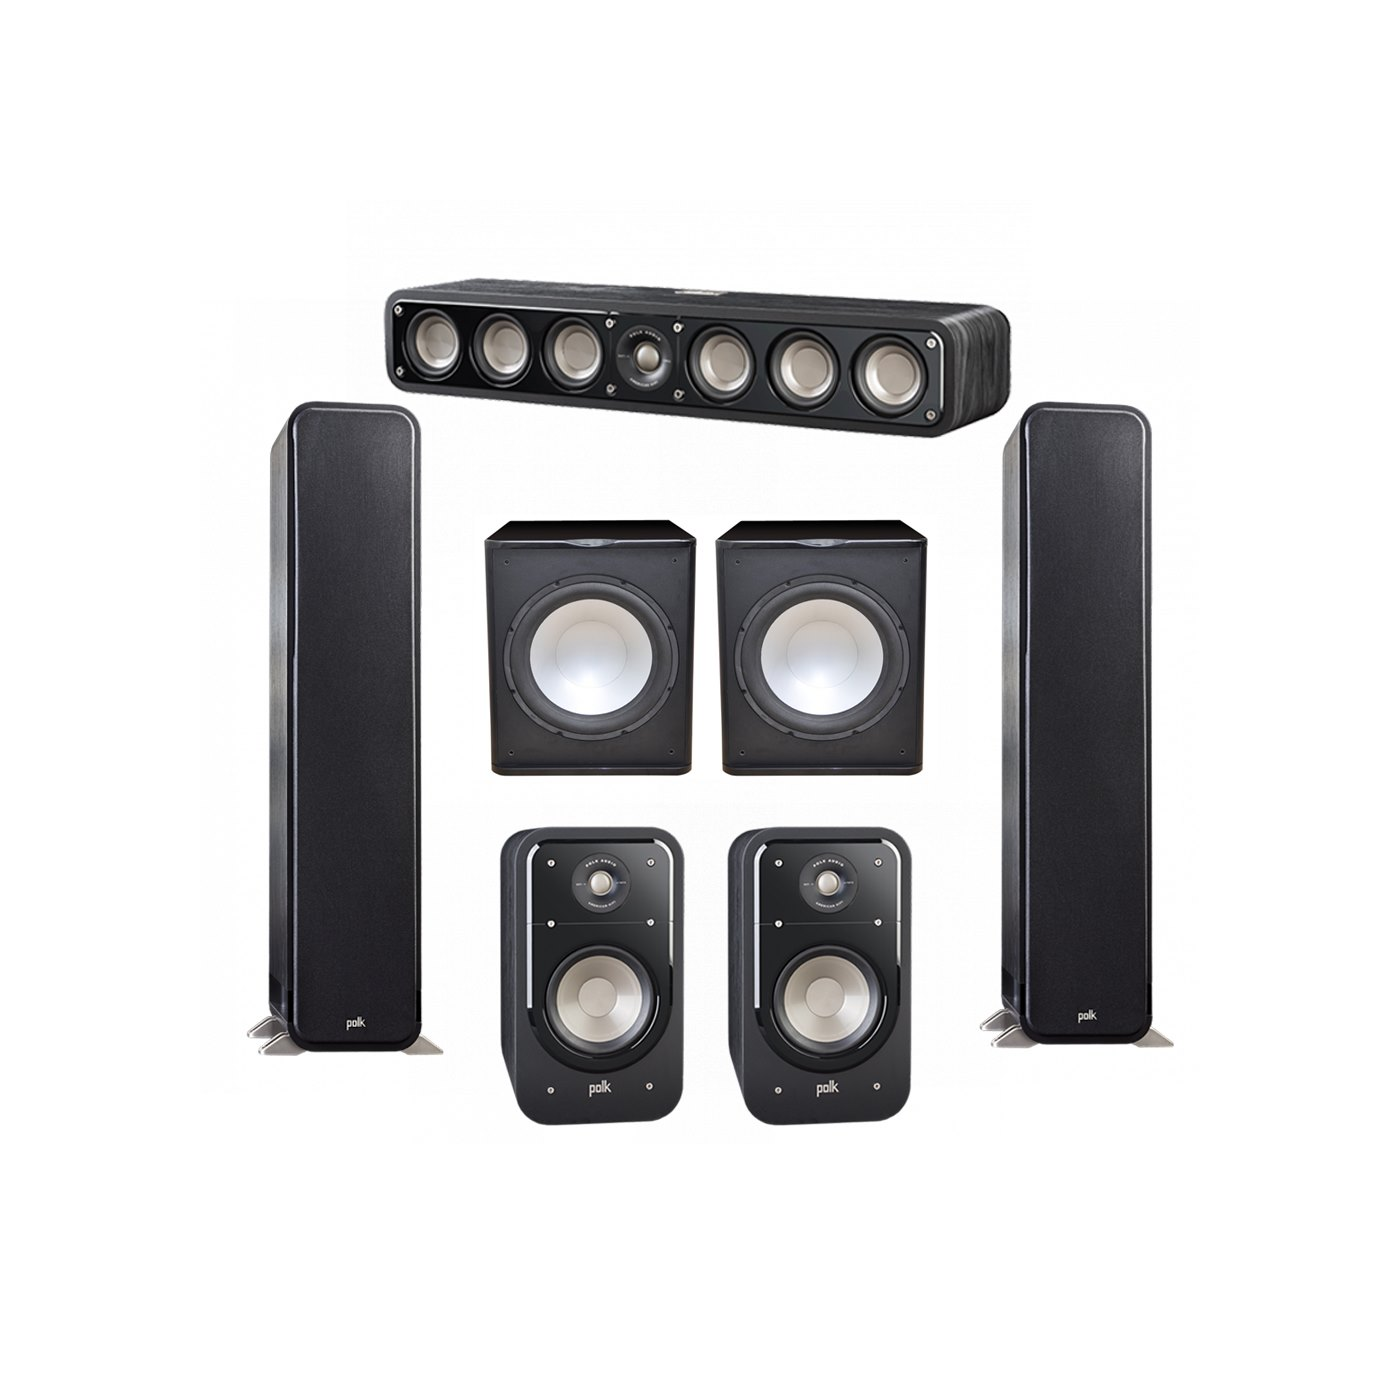 Polk Audio Signature 5.2 System with 2 S55 Tower Speaker, 1 Polk S35 Center Speaker, 2 Polk S20 Bookshelf Speaker, 2 Premier Acoustic PA-150 Powered Subwoofer